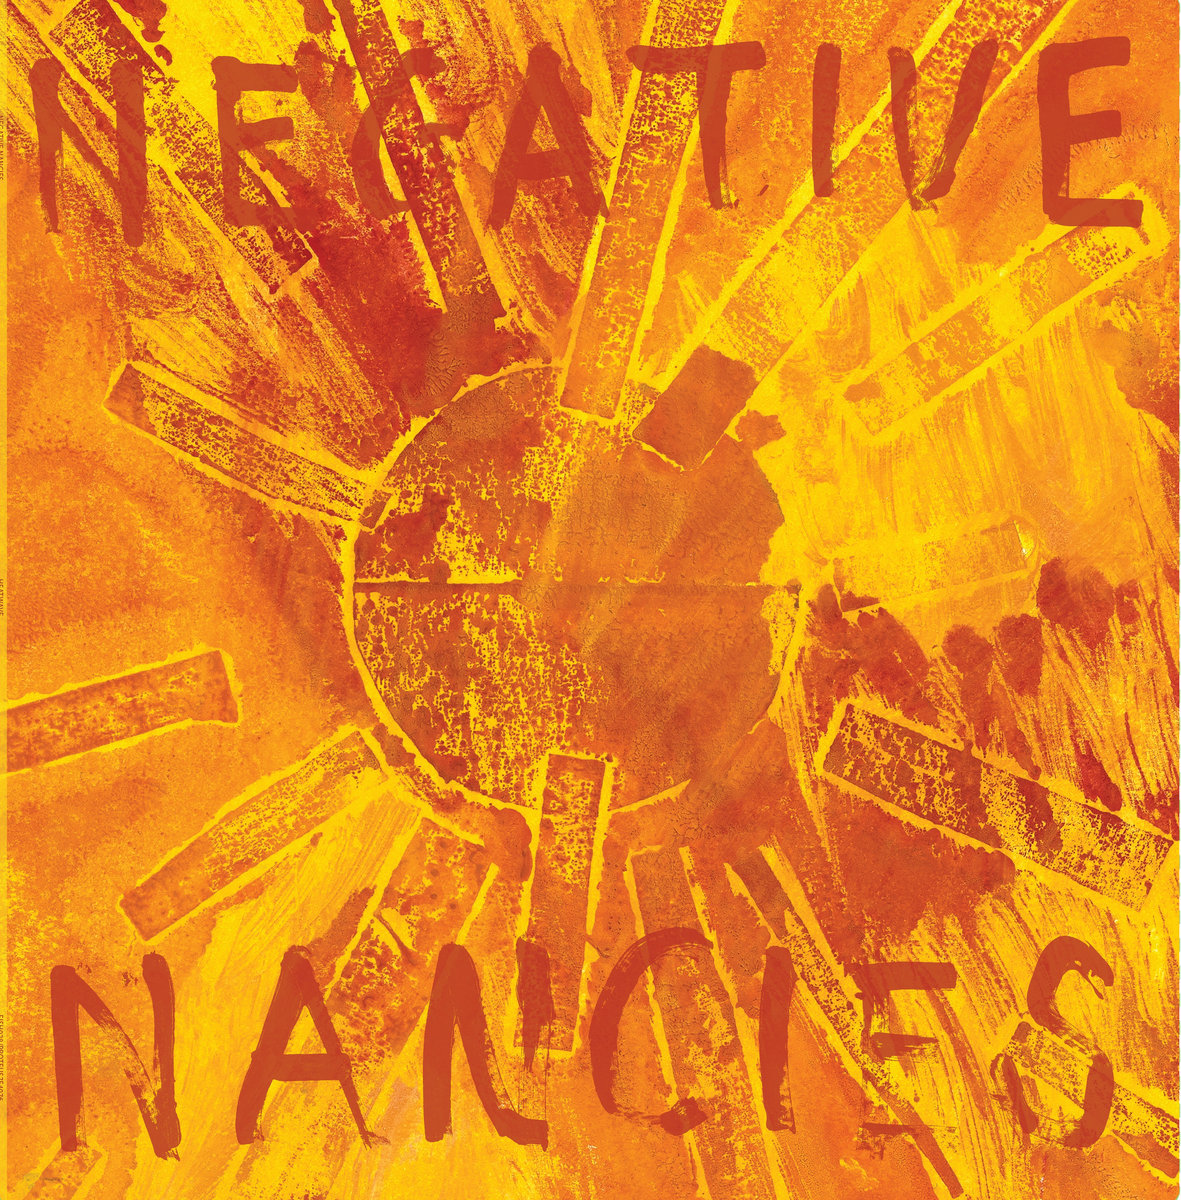 """Idiosyncrasy For A Deeper Purpose – """"Heatwave"""" by Negative Nancies"""